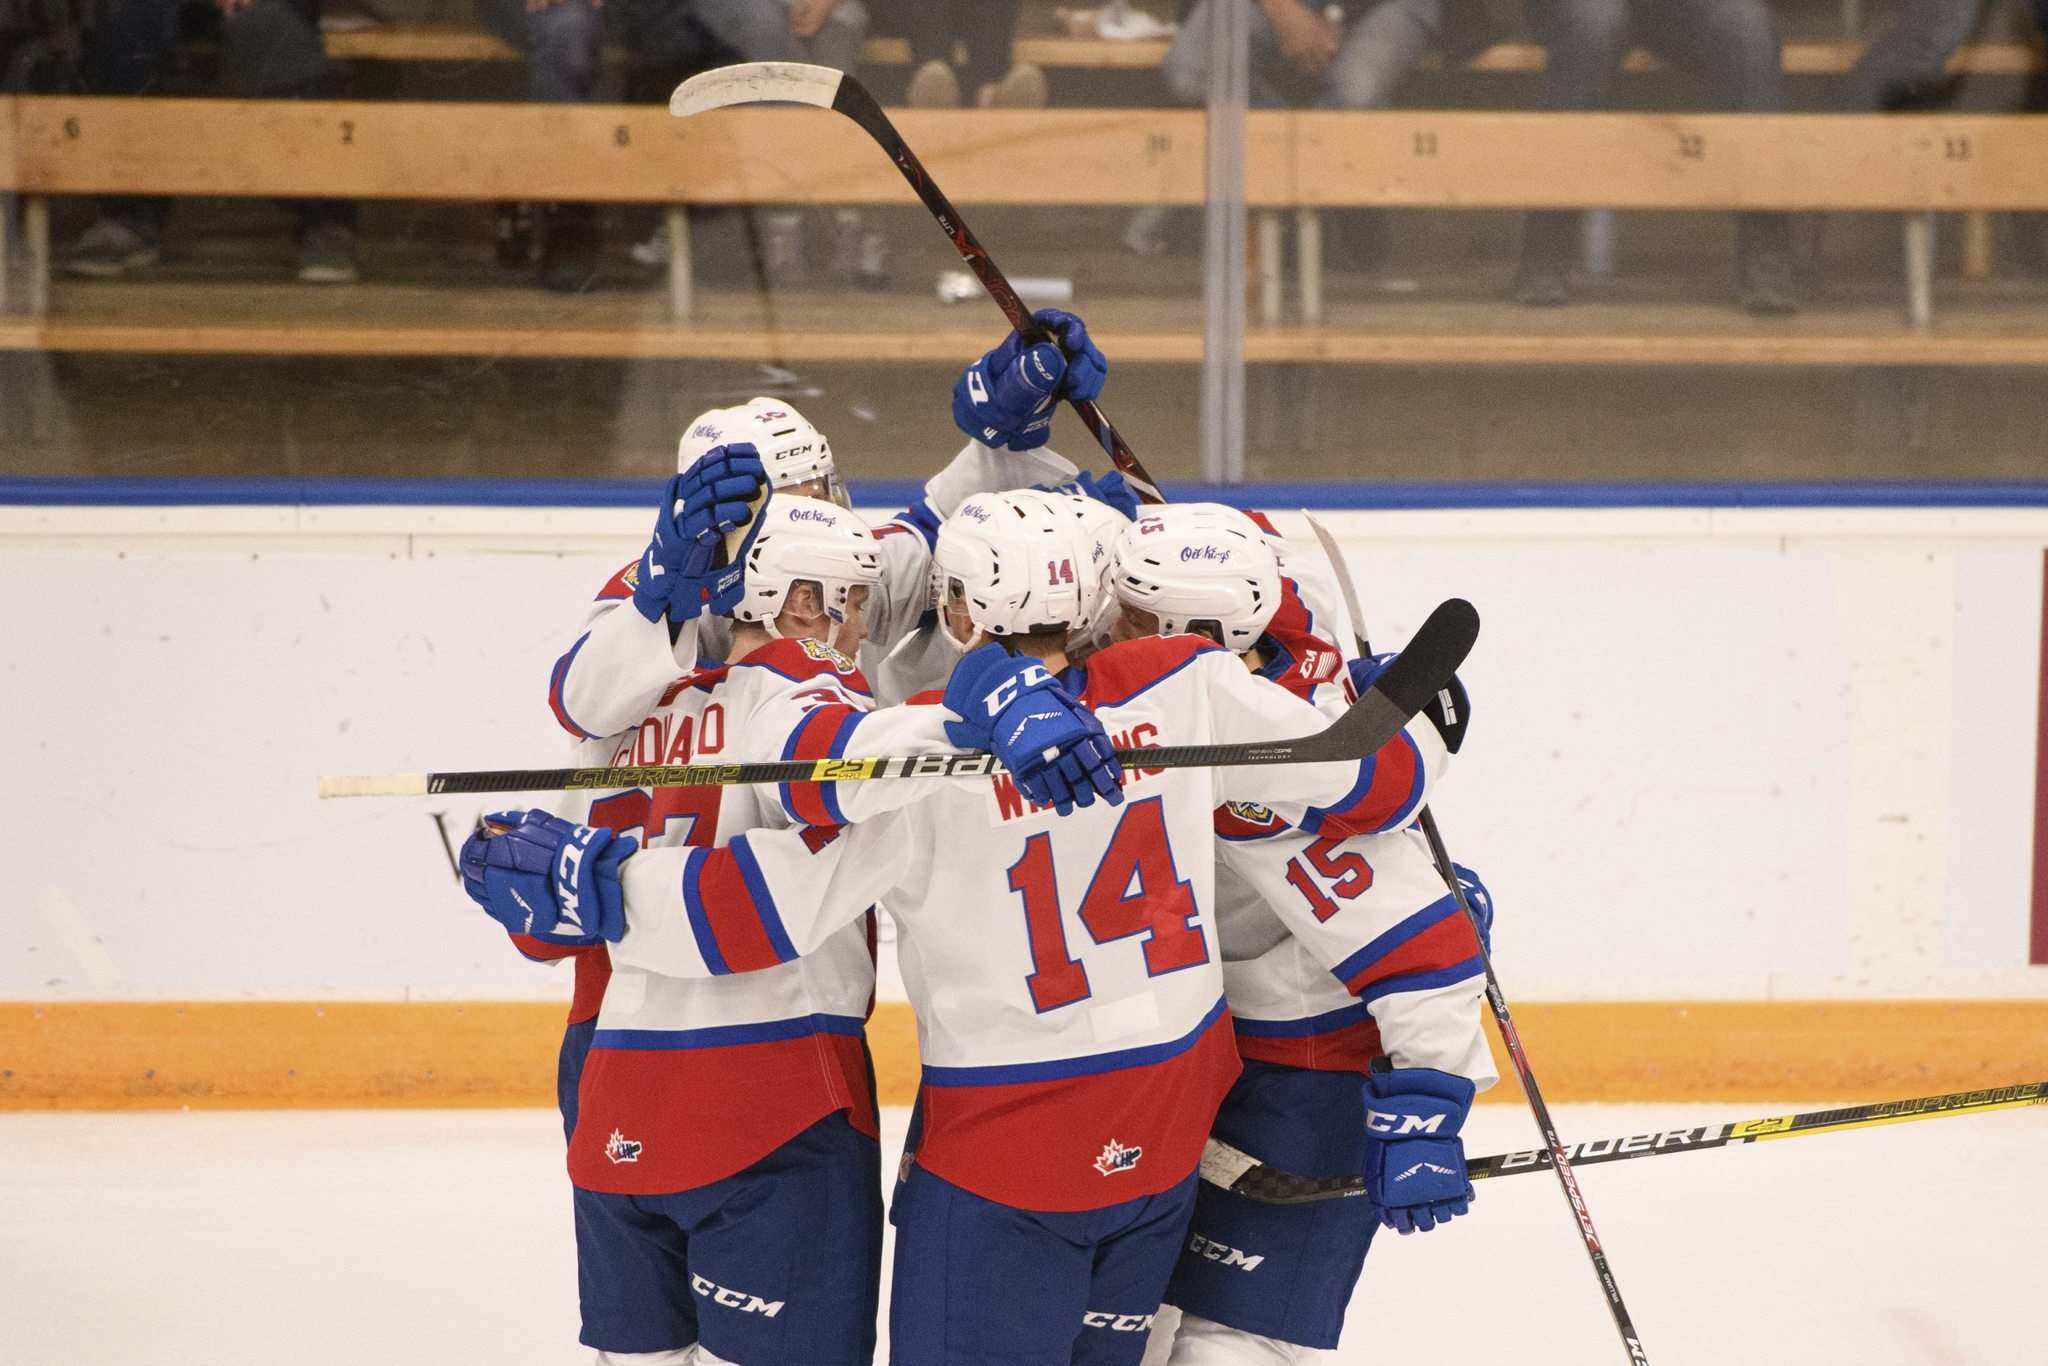 The Oil Kings celebrate their second of the three goals scored against the Winnipeg Ice in the first period Friday night. (Mike Sudoma / Winnipeg Free Press)</p>